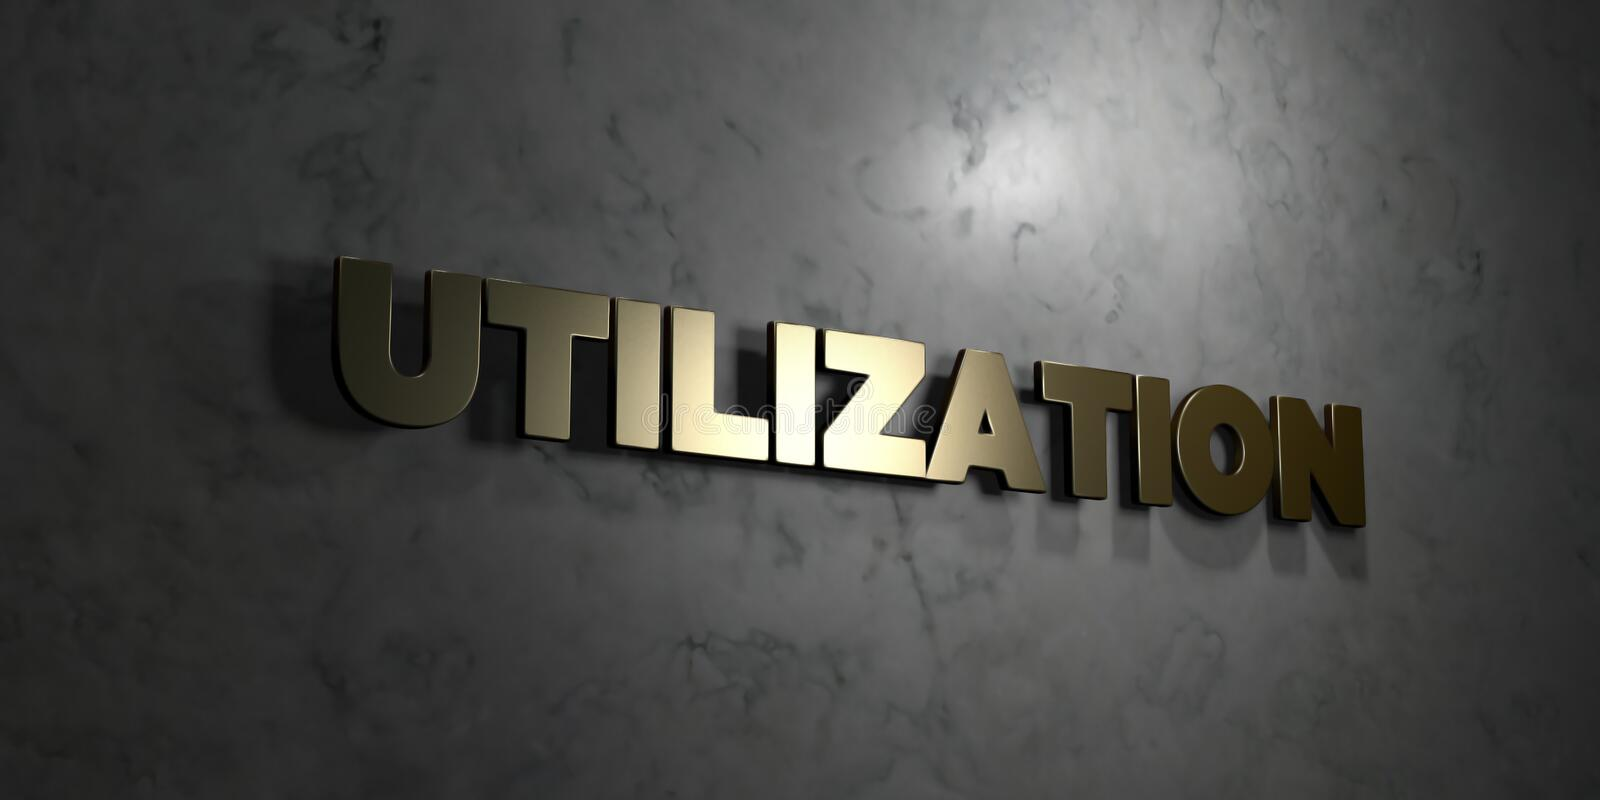 Utilization - Gold text on black background - 3D rendered royalty free stock picture. This image can be used for an online website banner ad or a print stock illustration